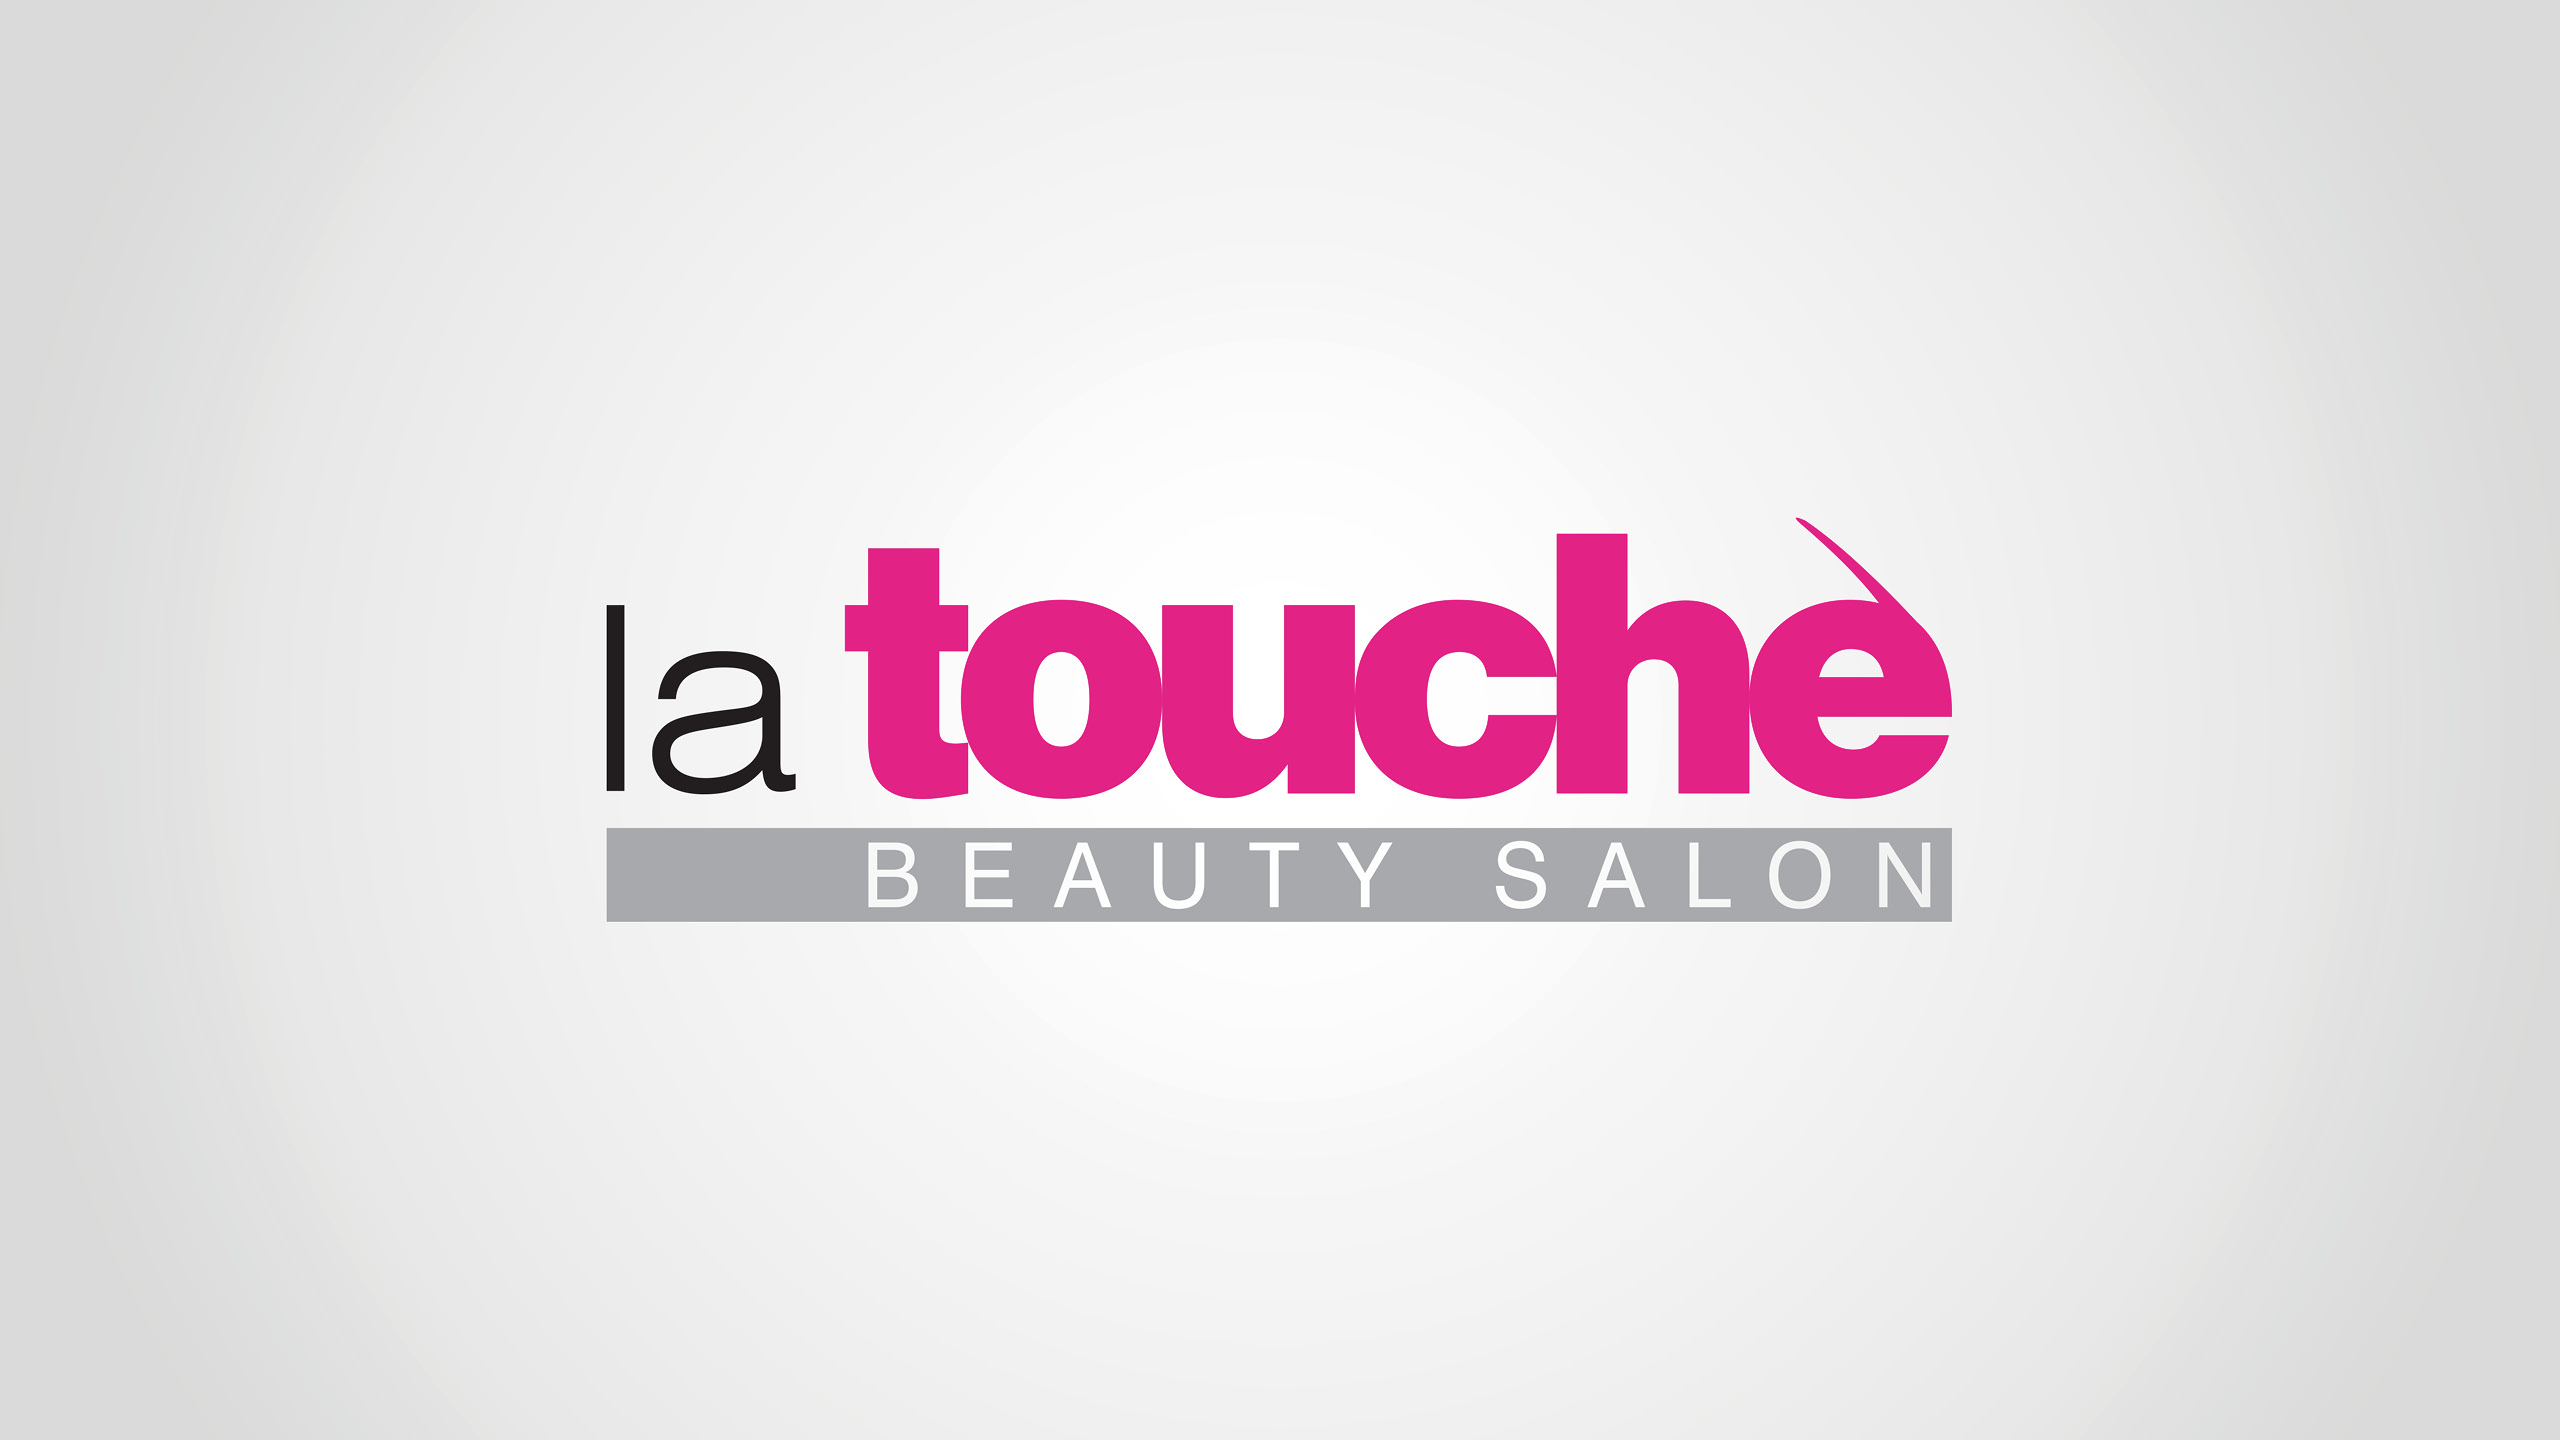 La Touche Beauty Salon